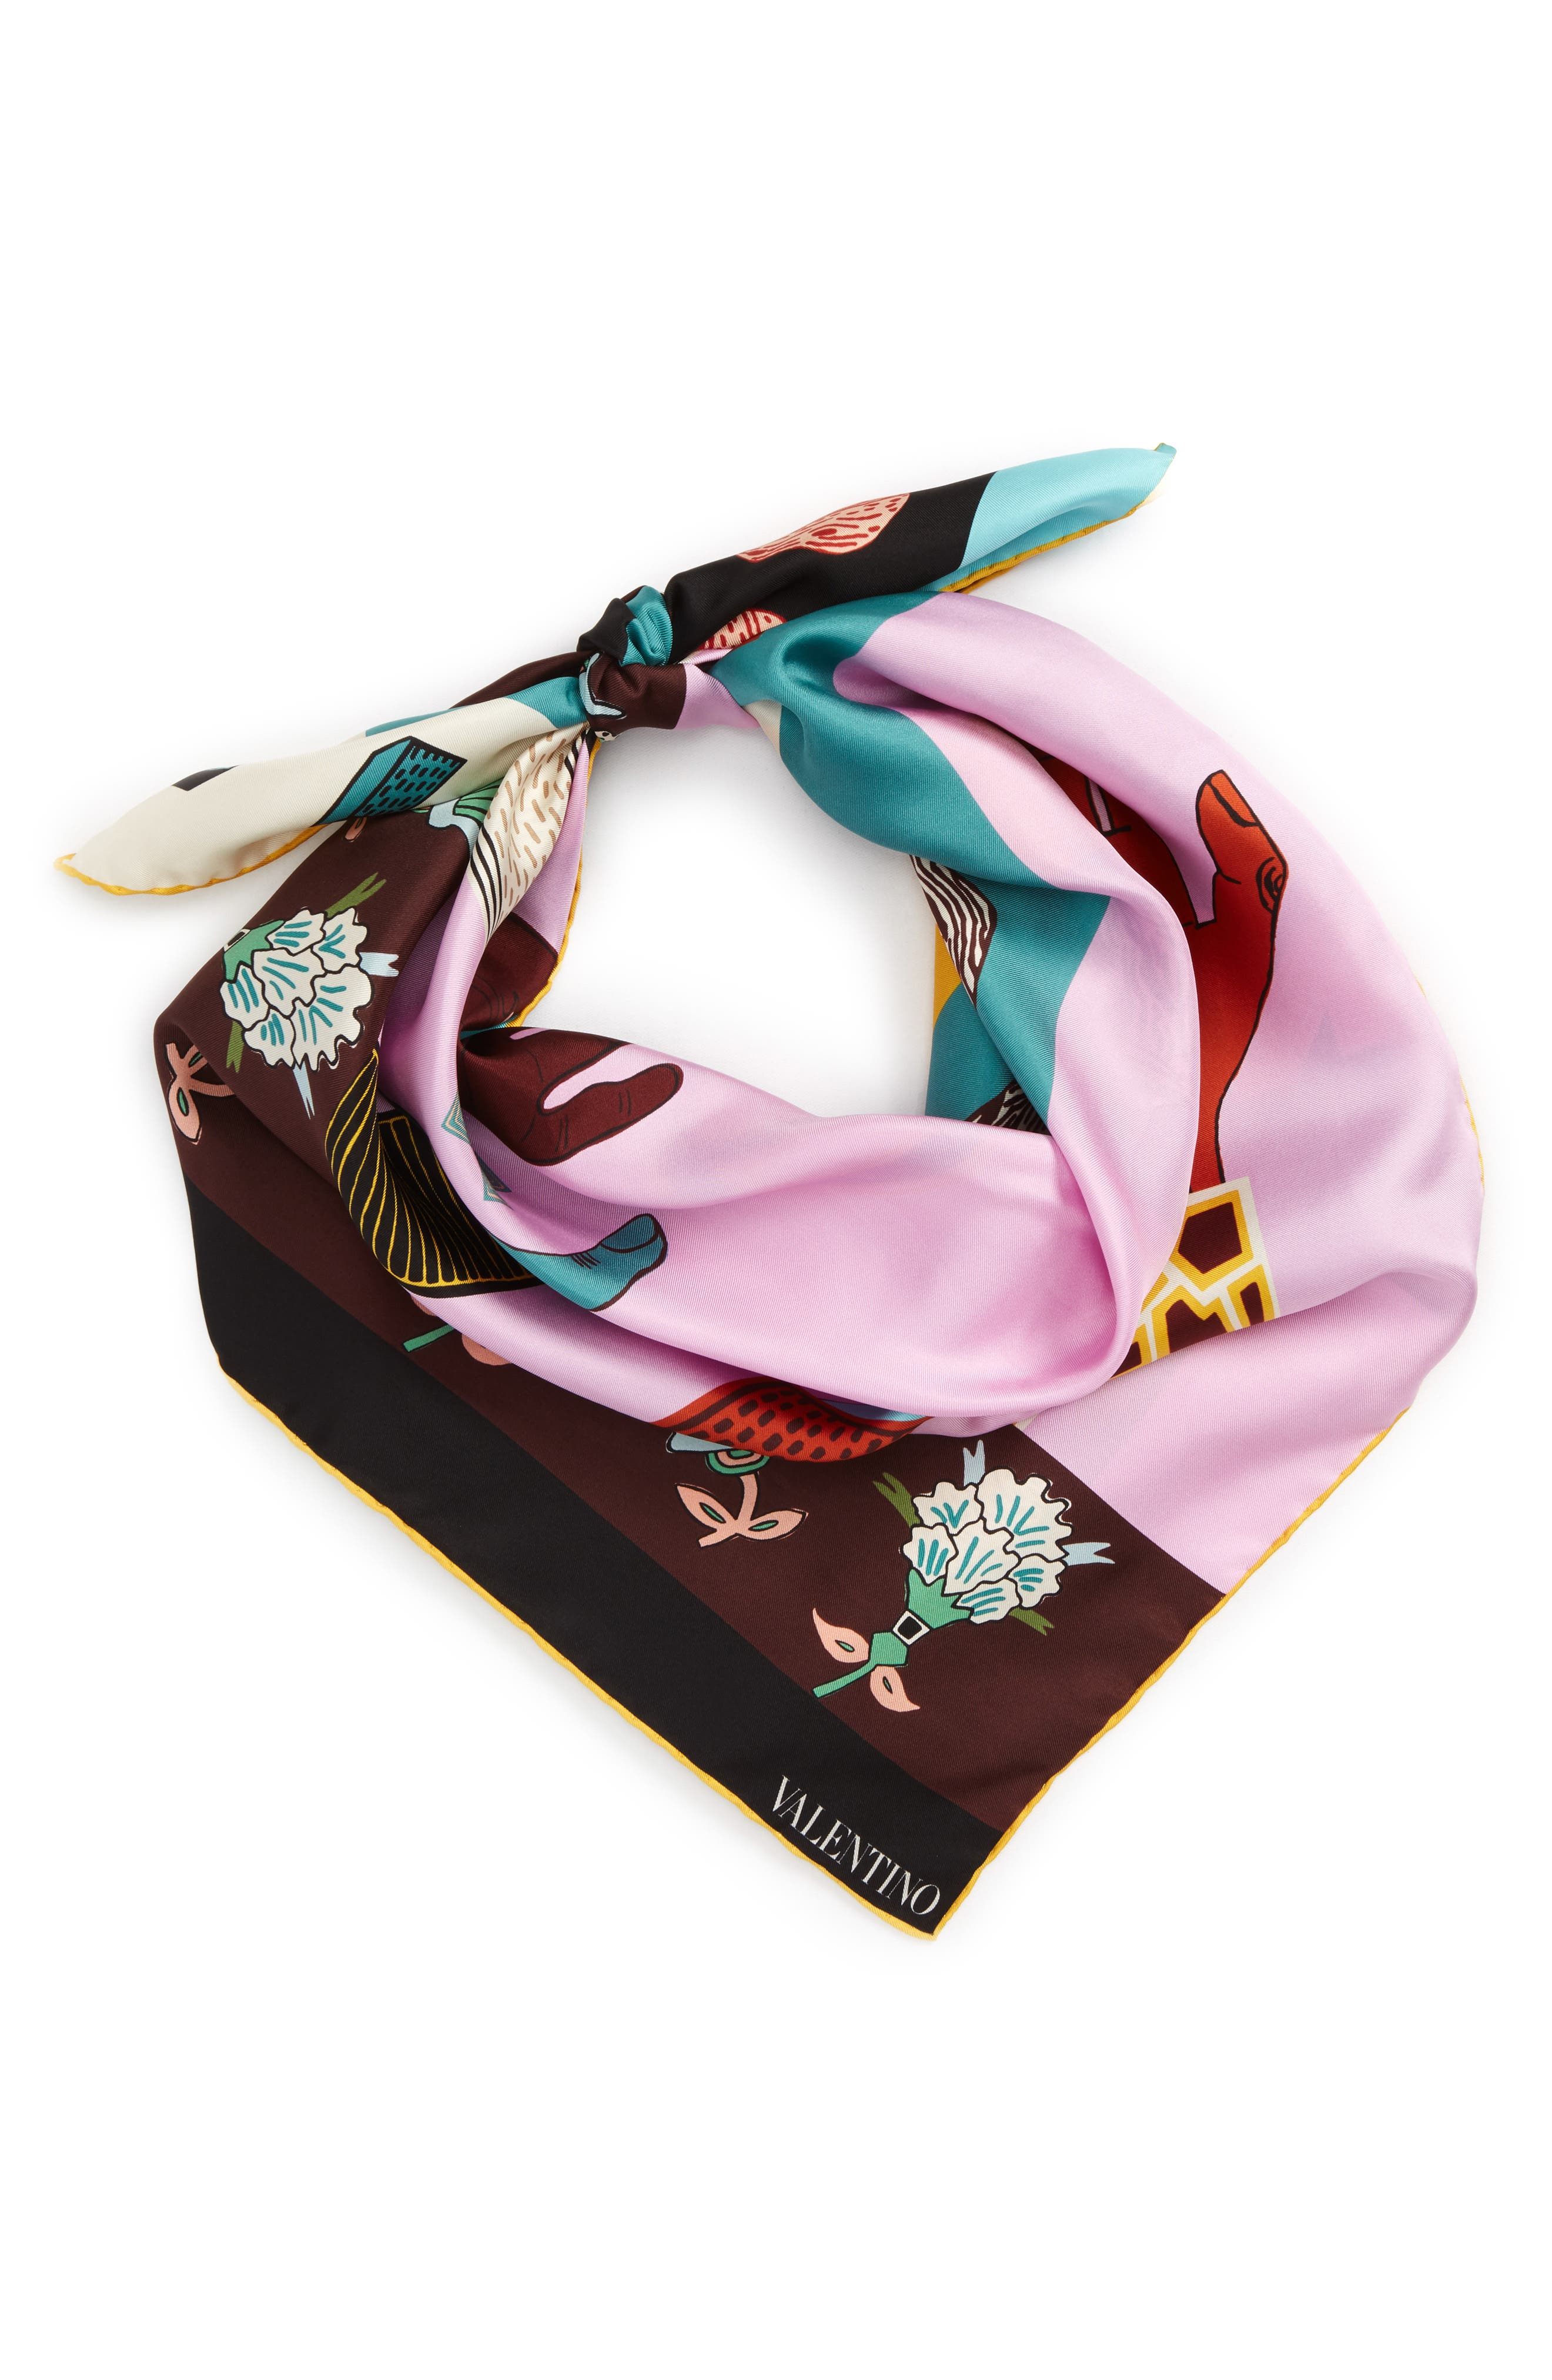 Counting Silk Scarf,                             Alternate thumbnail 2, color,                             Multicolor/ Cherry Blossom